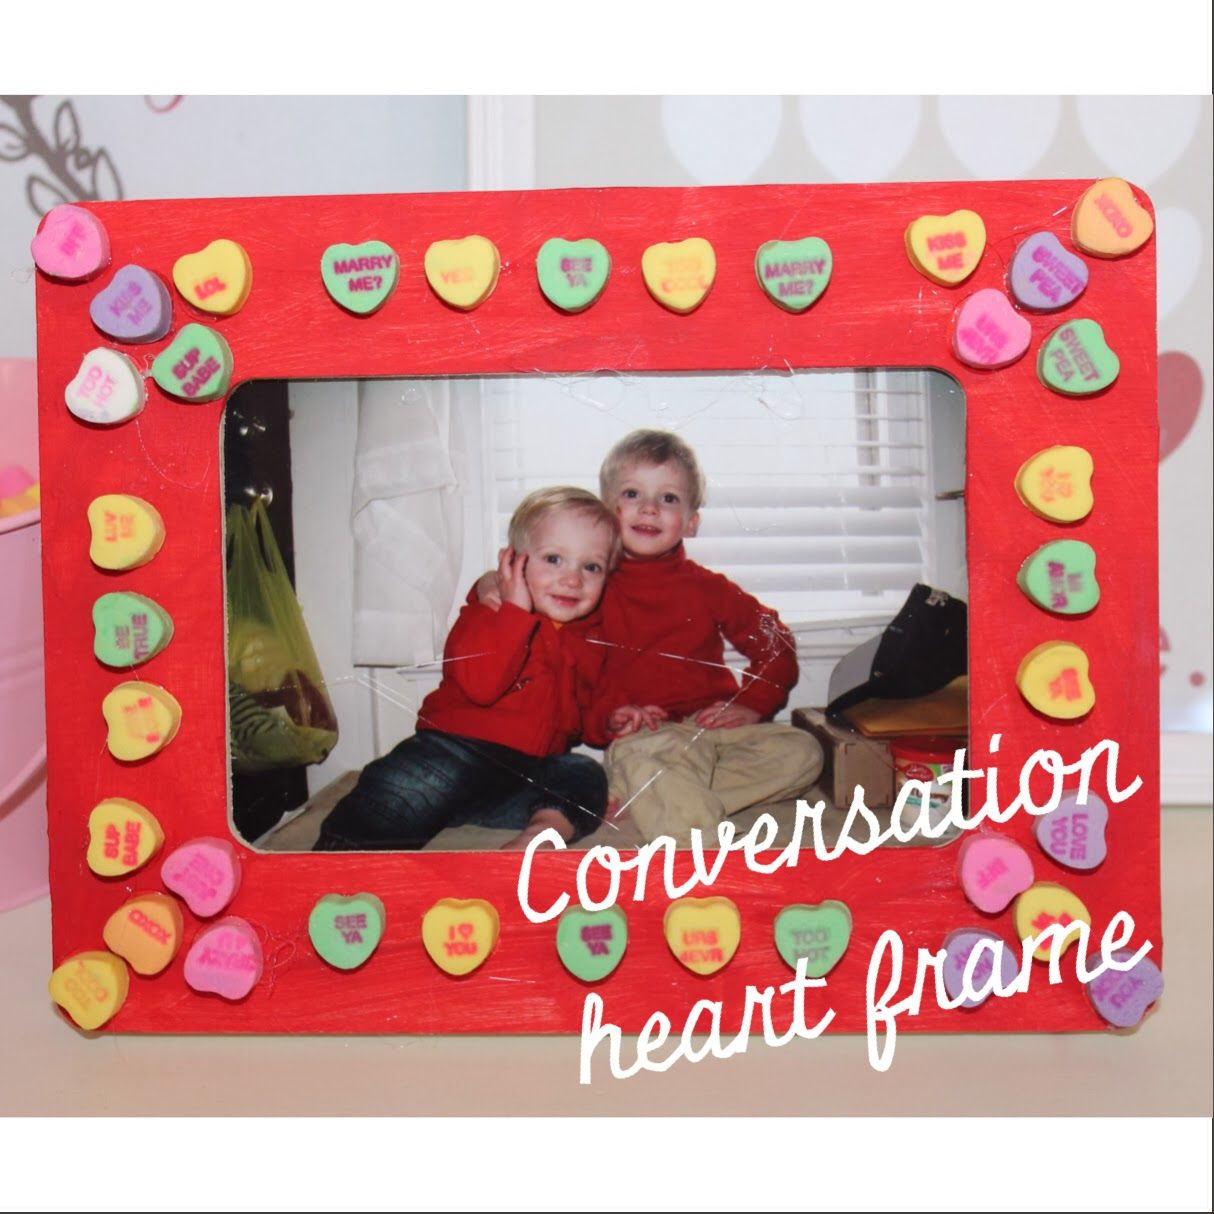 8 valentines day cards and crafts for kids heart frame 8 valentines day cards and crafts for kids jeuxipadfo Gallery